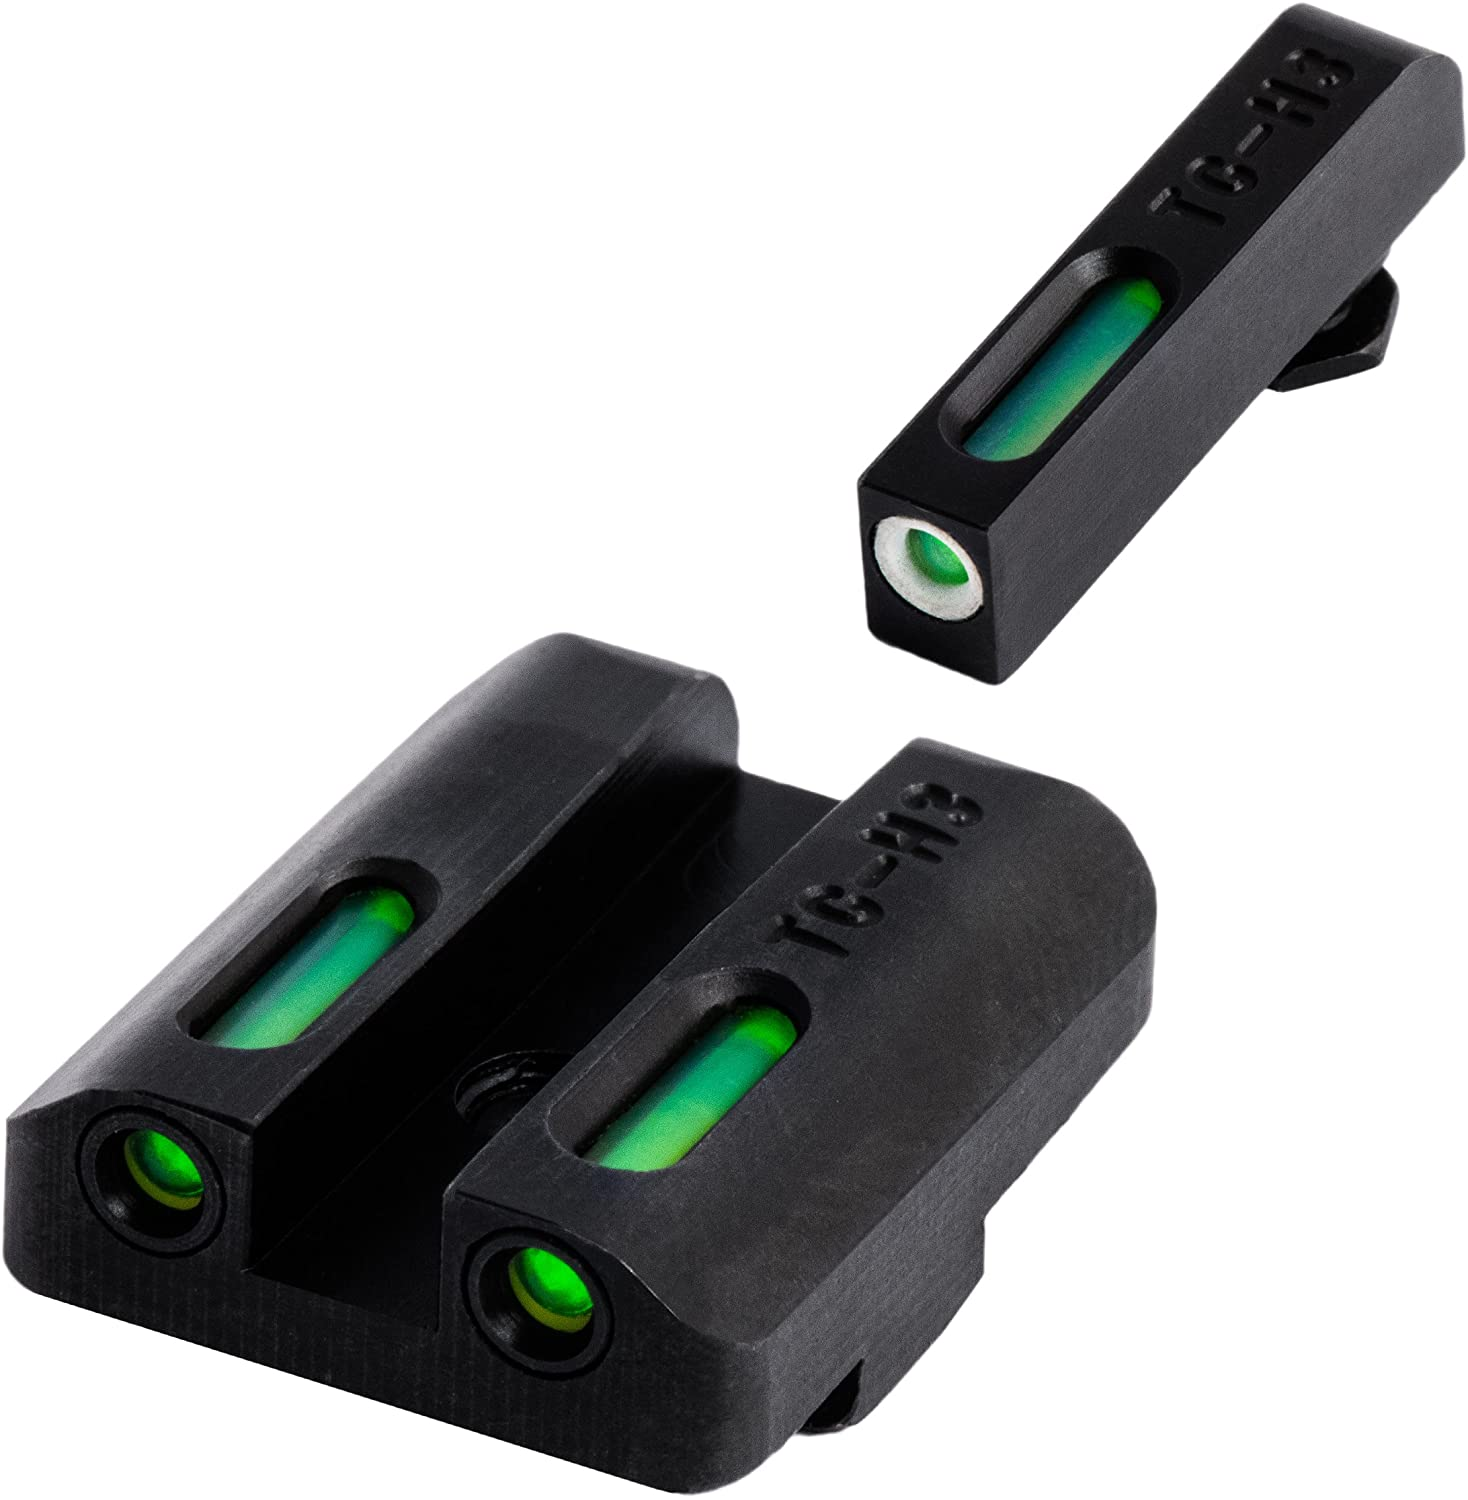 TRUGLO TFX Tritium and Fiber-Optic Xtreme Handgun Sights for Glock Pistols